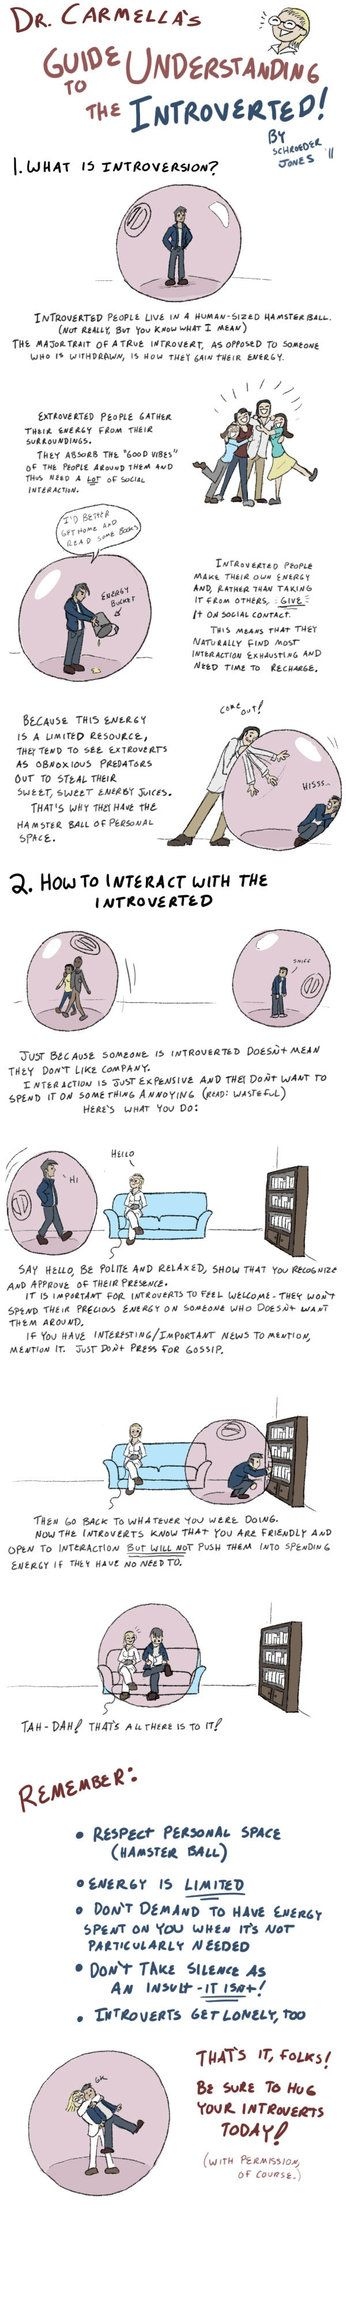 How to Live with Introverts by =SchroJones on deviantART